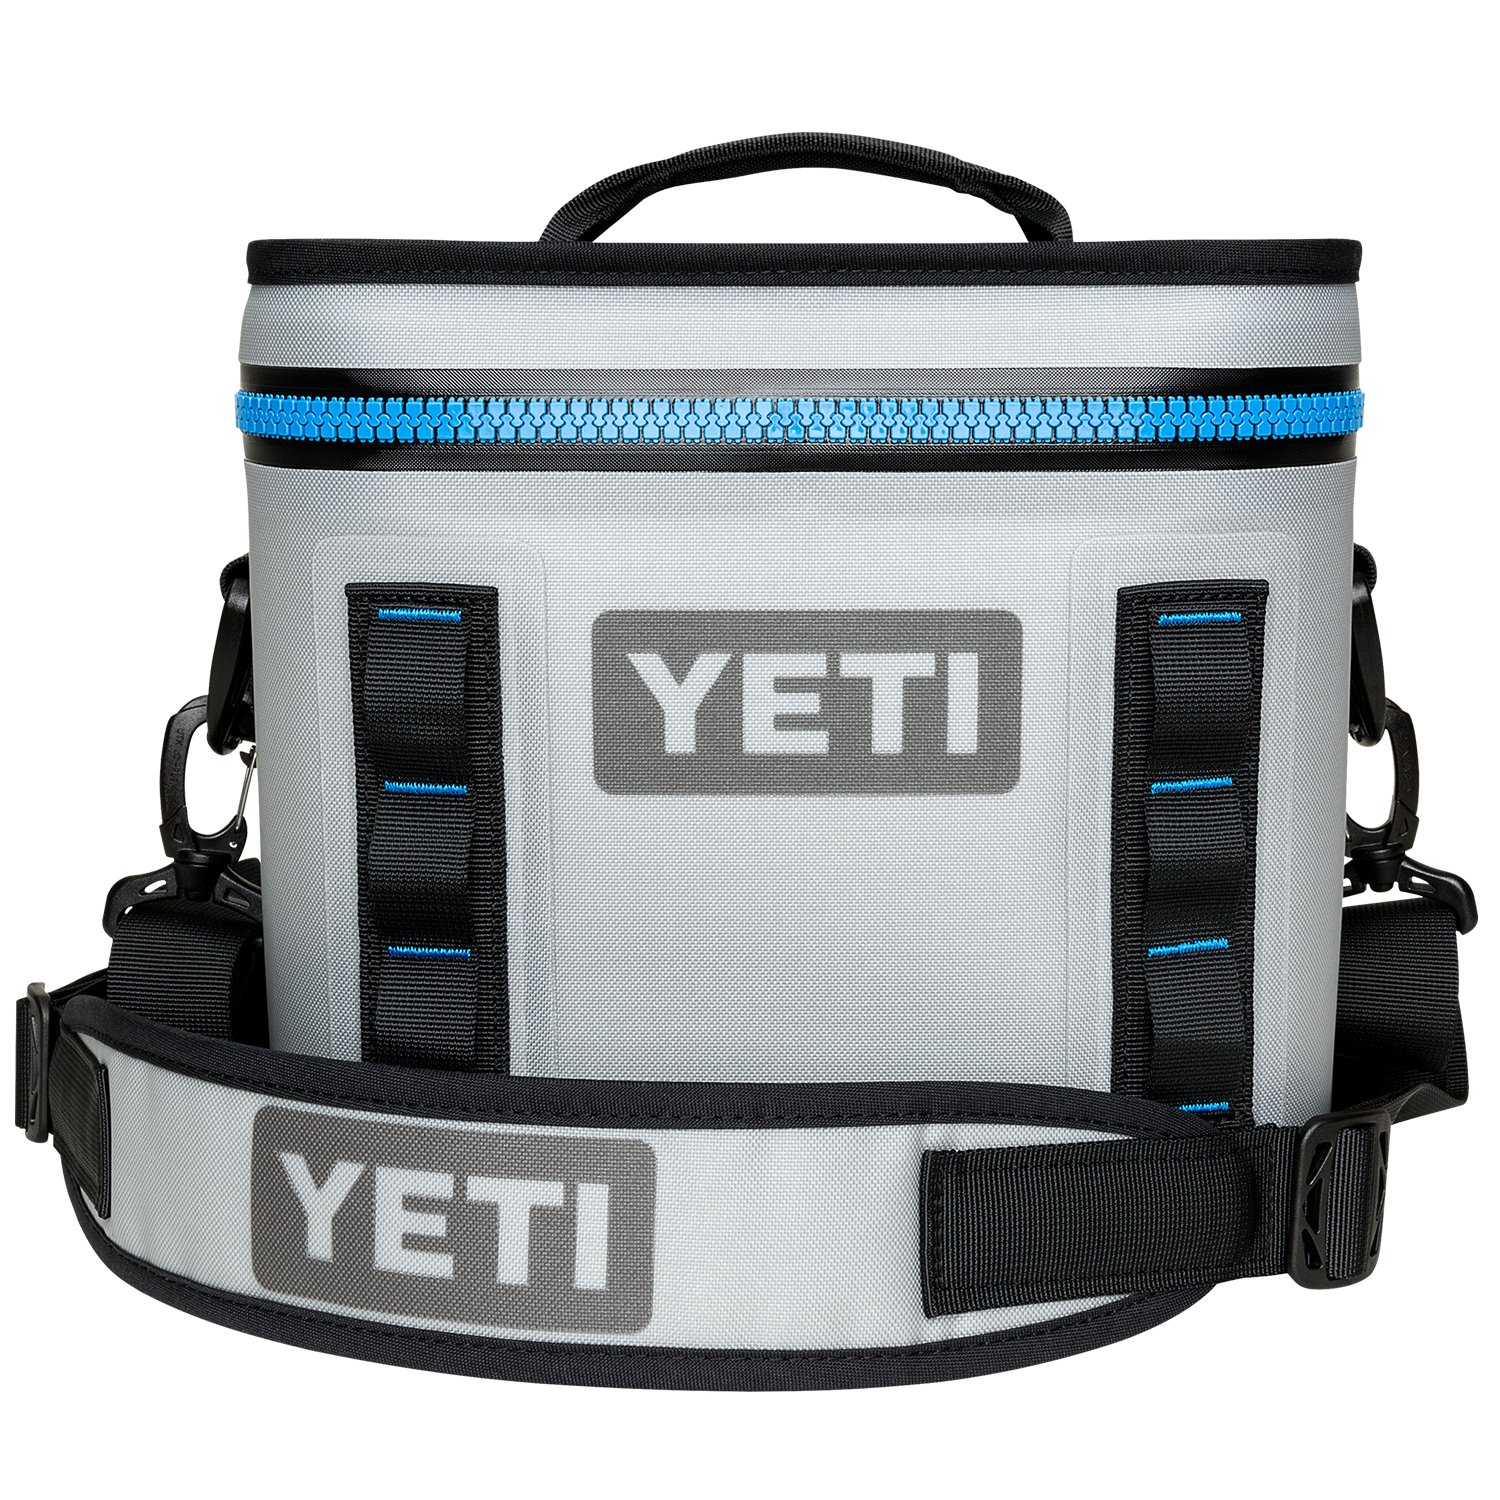 Top 10 Best Yeti Coolers For Hunting & Camping 2021 Reviews 5